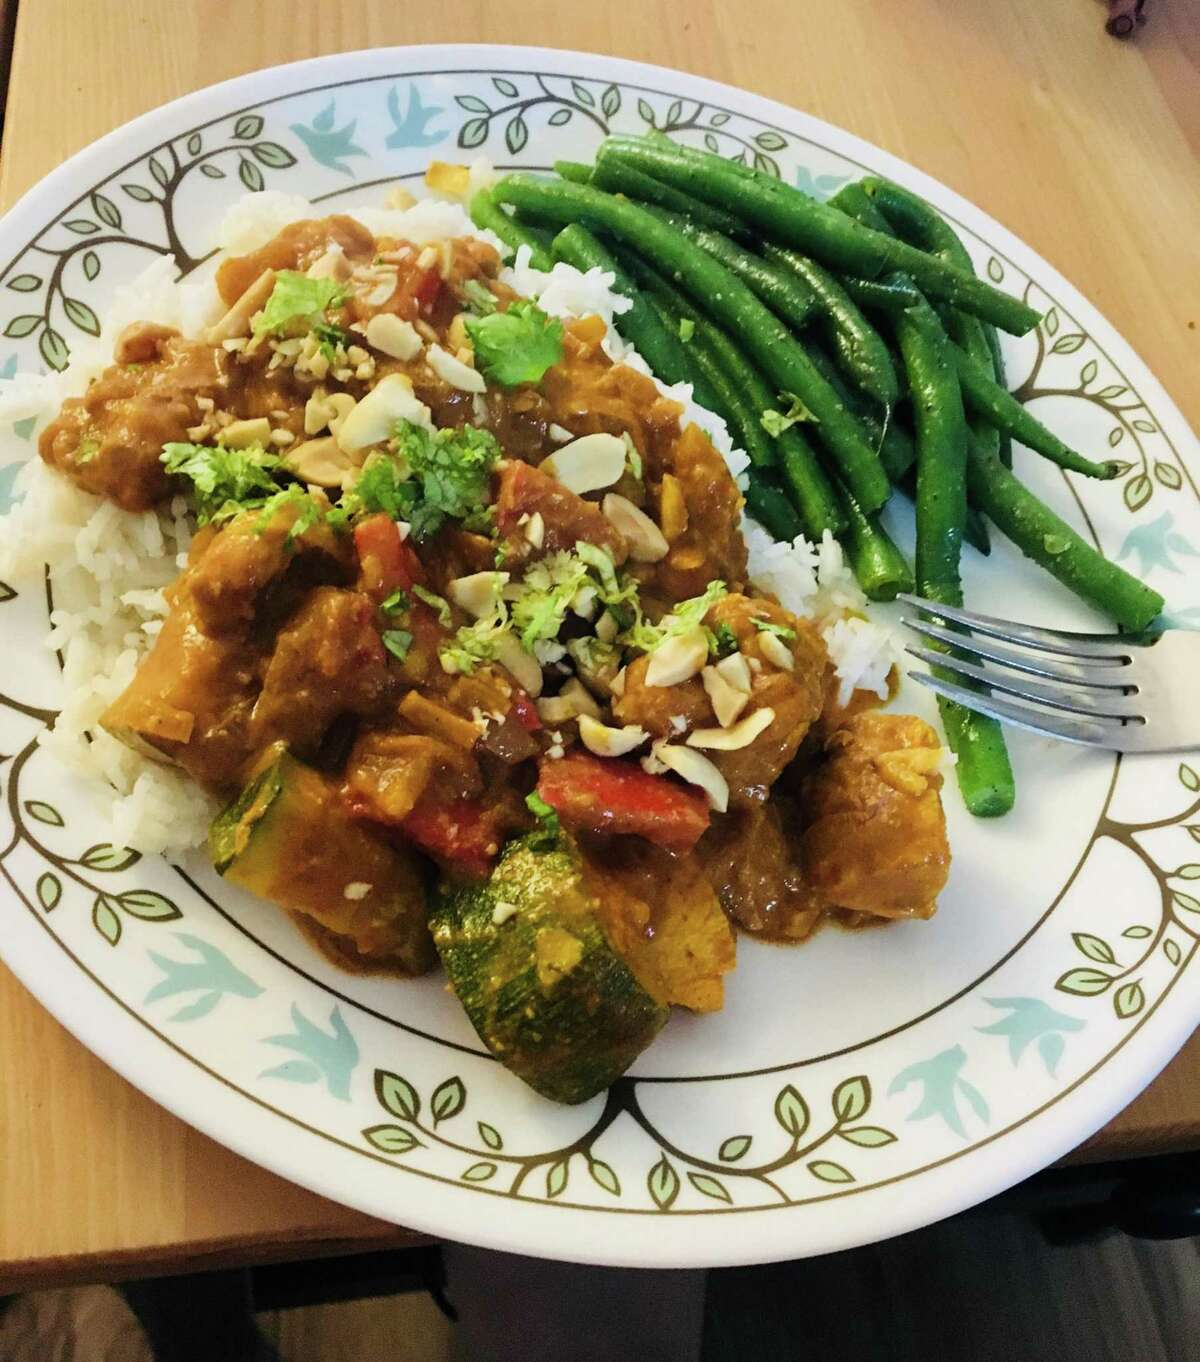 Chef John's Peanut Curry Chicken is a simple, spicy recipe using chicken thighs from Allrecipes.com.